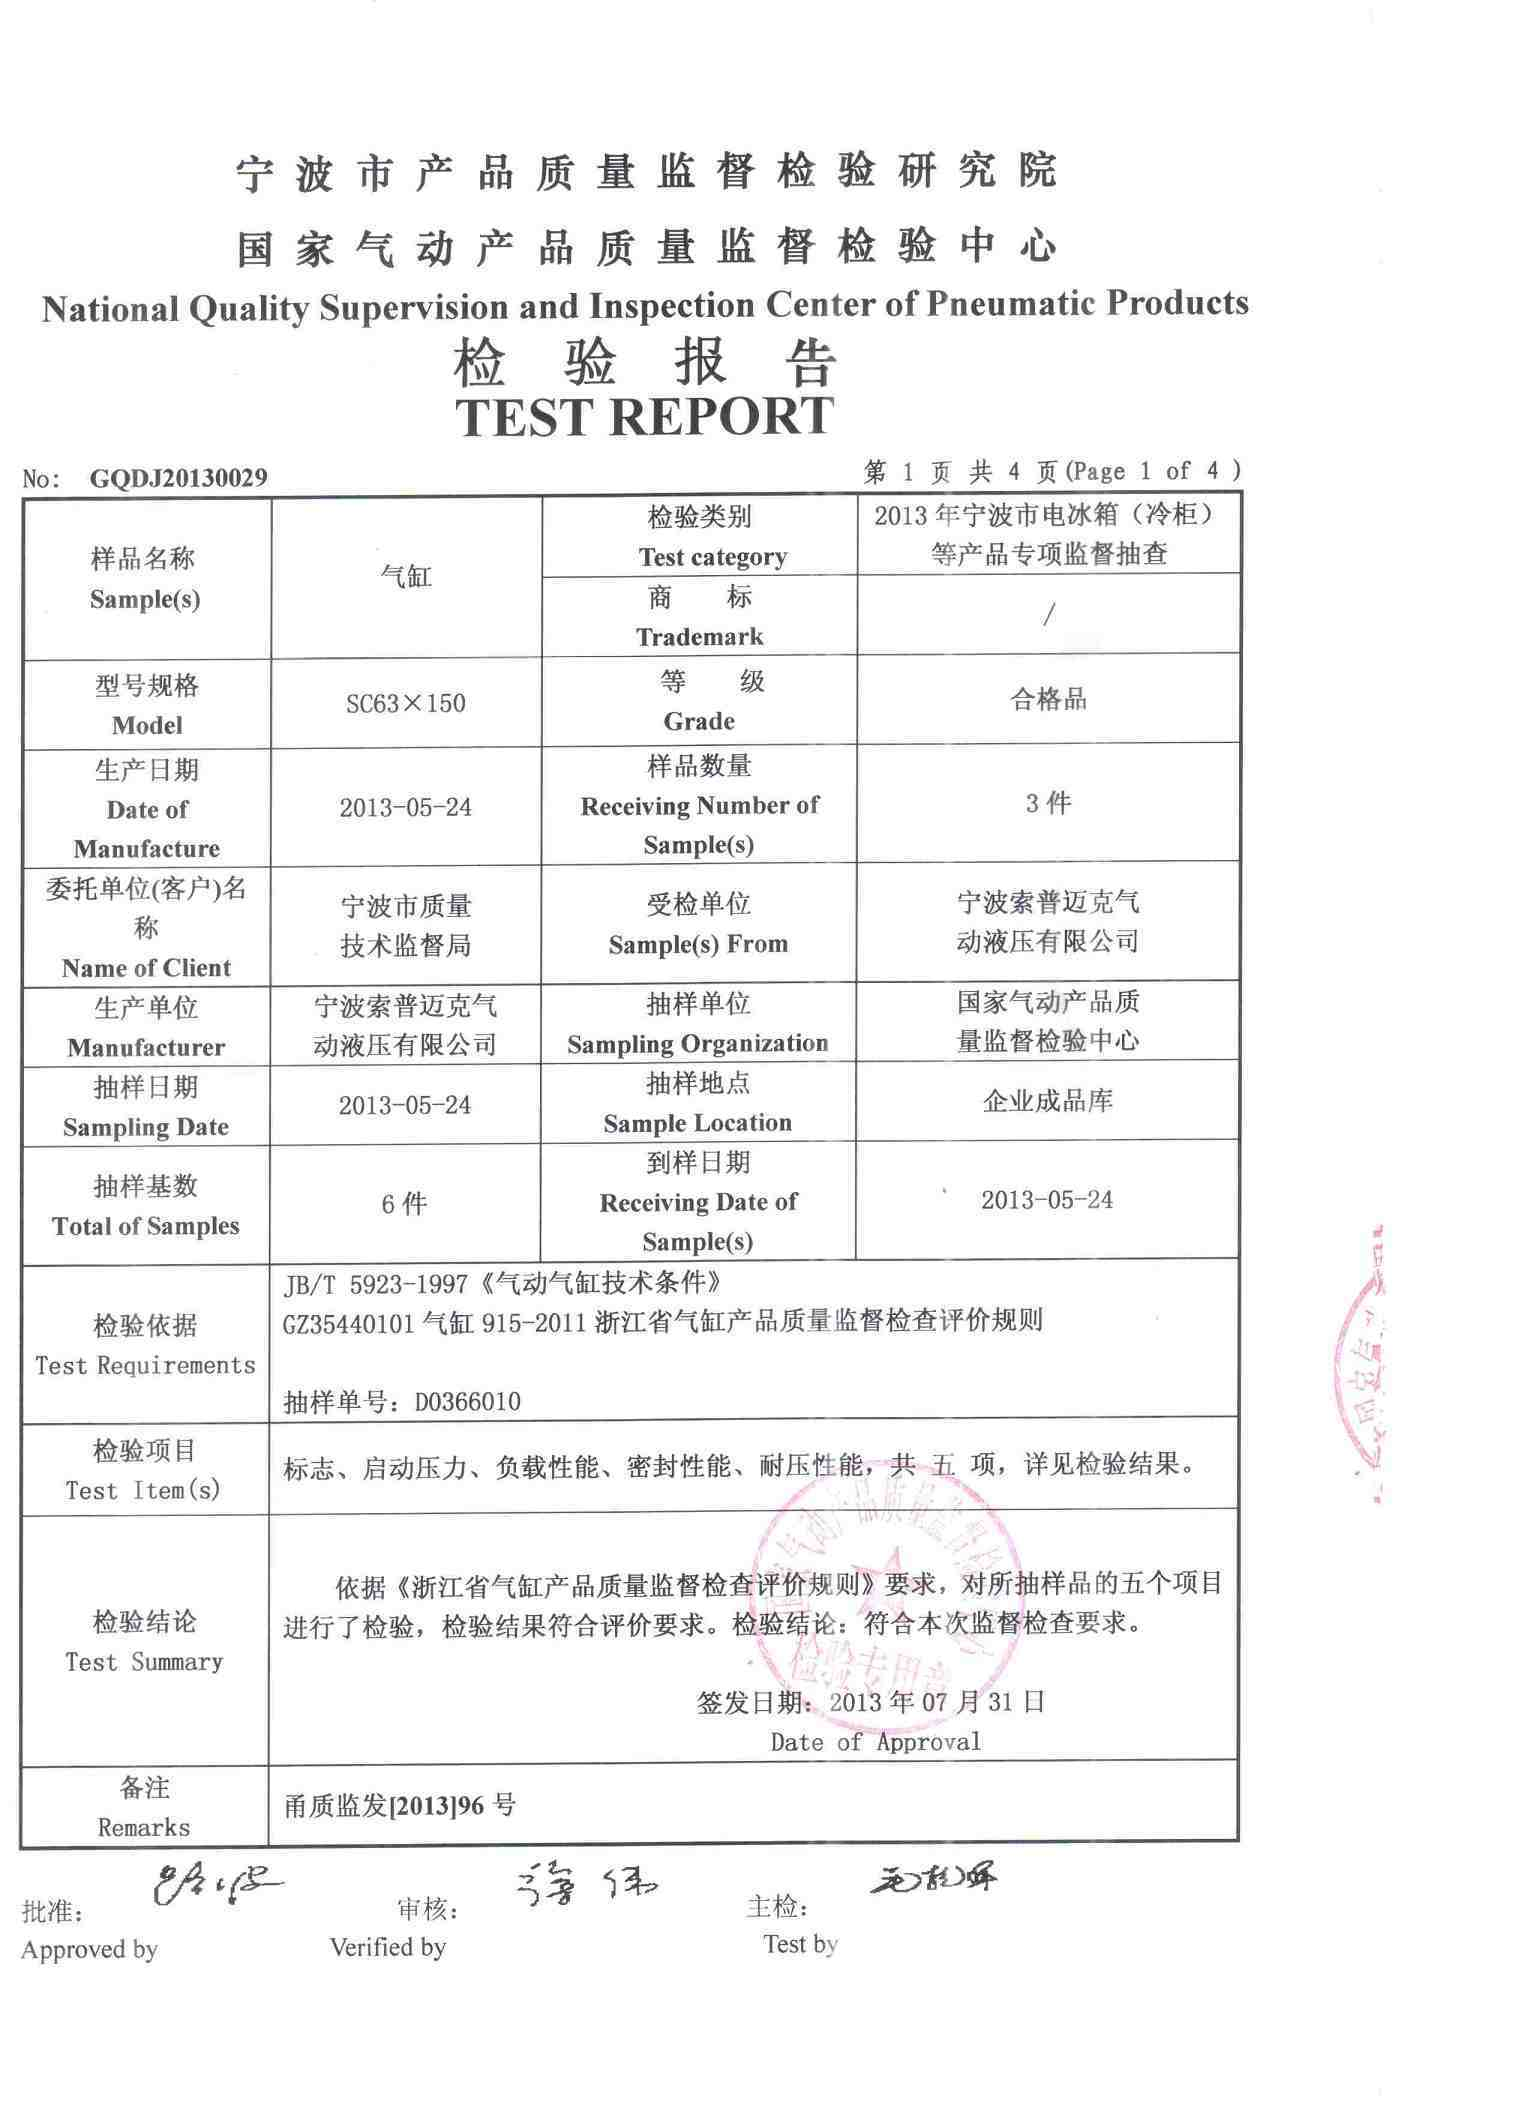 Products Test Report 2013